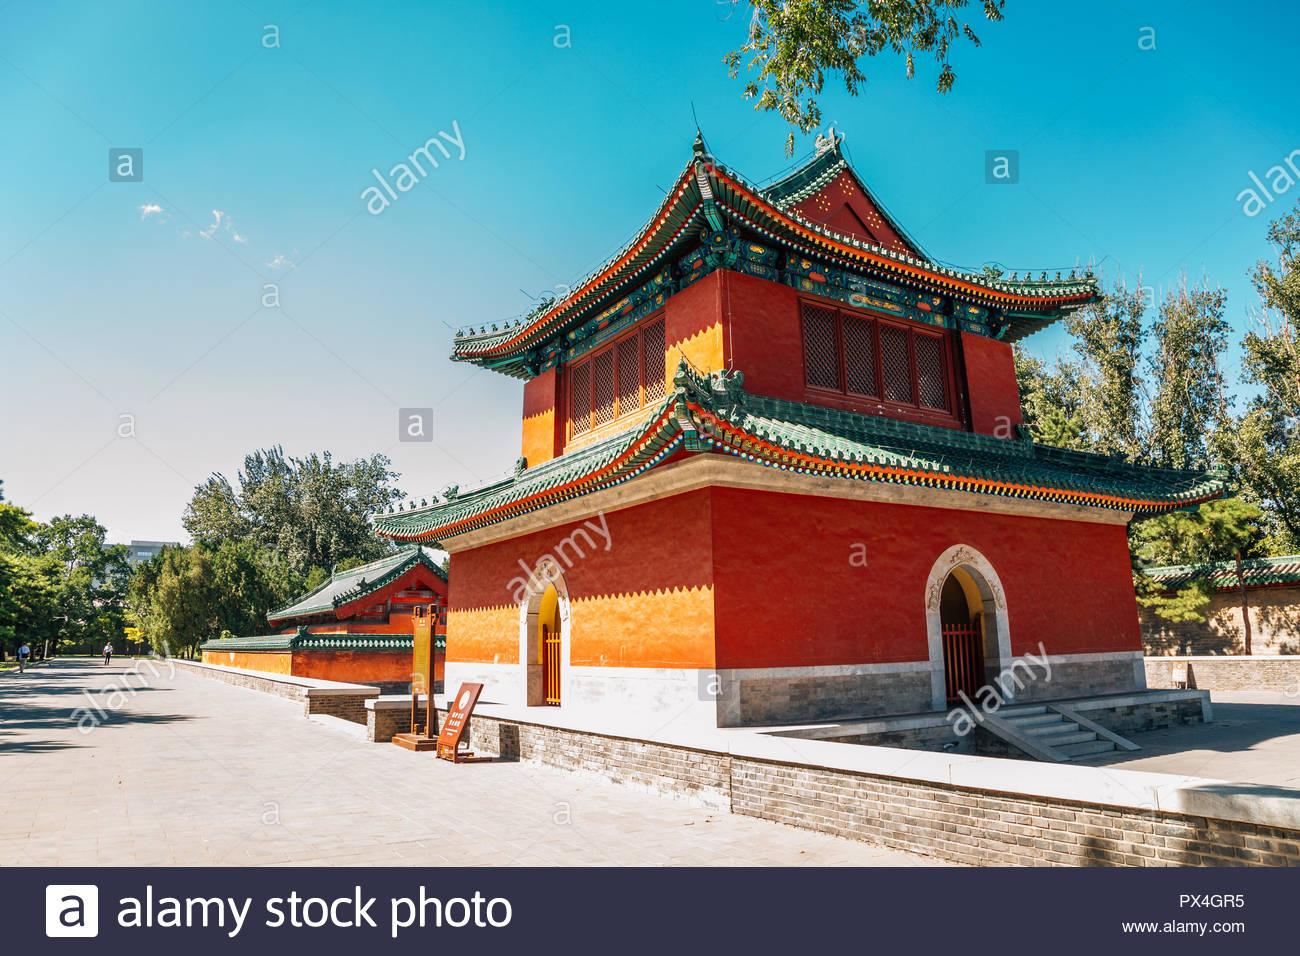 Bell Tower at Temple of Earth, Ditan Park in Beijing, China - Stock Image